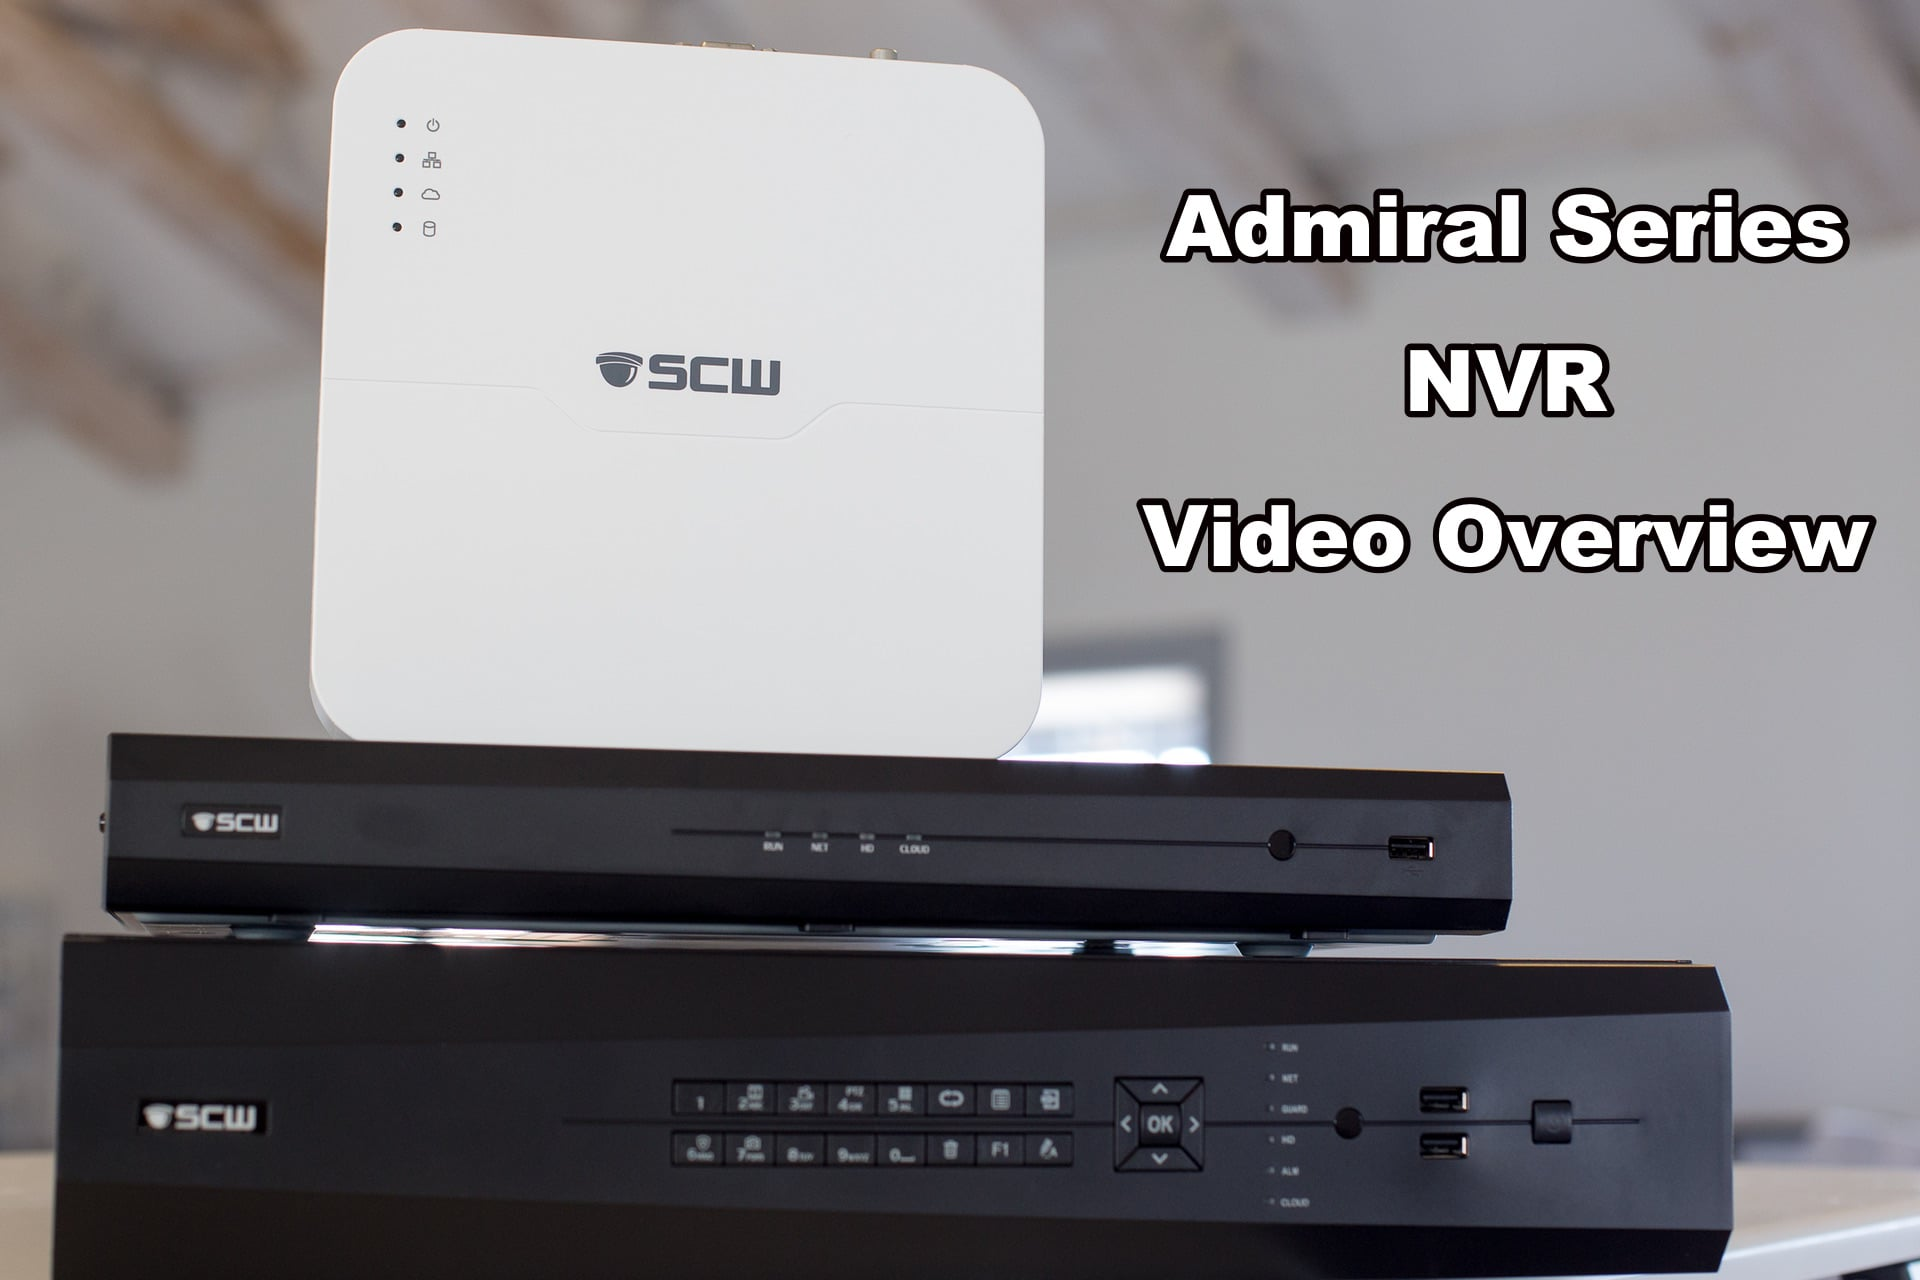 Admiral Series NVR Overview